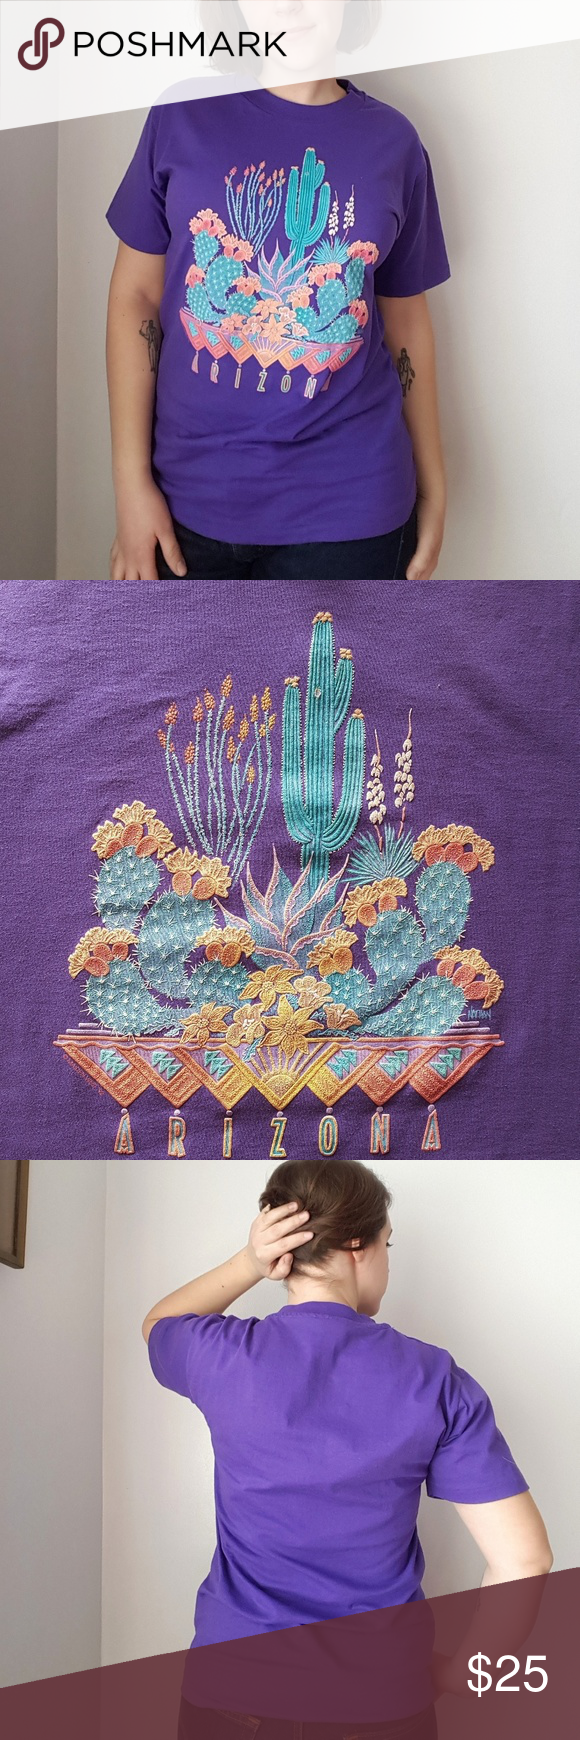 Vintage Purple Arizona Cactus T-Shirt Vintage Purple Arizona Cactus T-Shirt. Featuring a textured graphic of cacti and the word Arizona on a purple Hanes 50/50 t-shirt. 50% cotton, 50% polyester, made in USA. Marked a size M- 19 armpit to armpit, 27 long. In great vintage condition with no noticeable flaws. Vintage Tops Tees - Short Sleeve #arizonacactus Vintage Purple Arizona Cactus T-Shirt Vintage Purple Arizona Cactus T-Shirt. Featuring a textured graphic of cacti and the word Arizona on a #arizonacactus